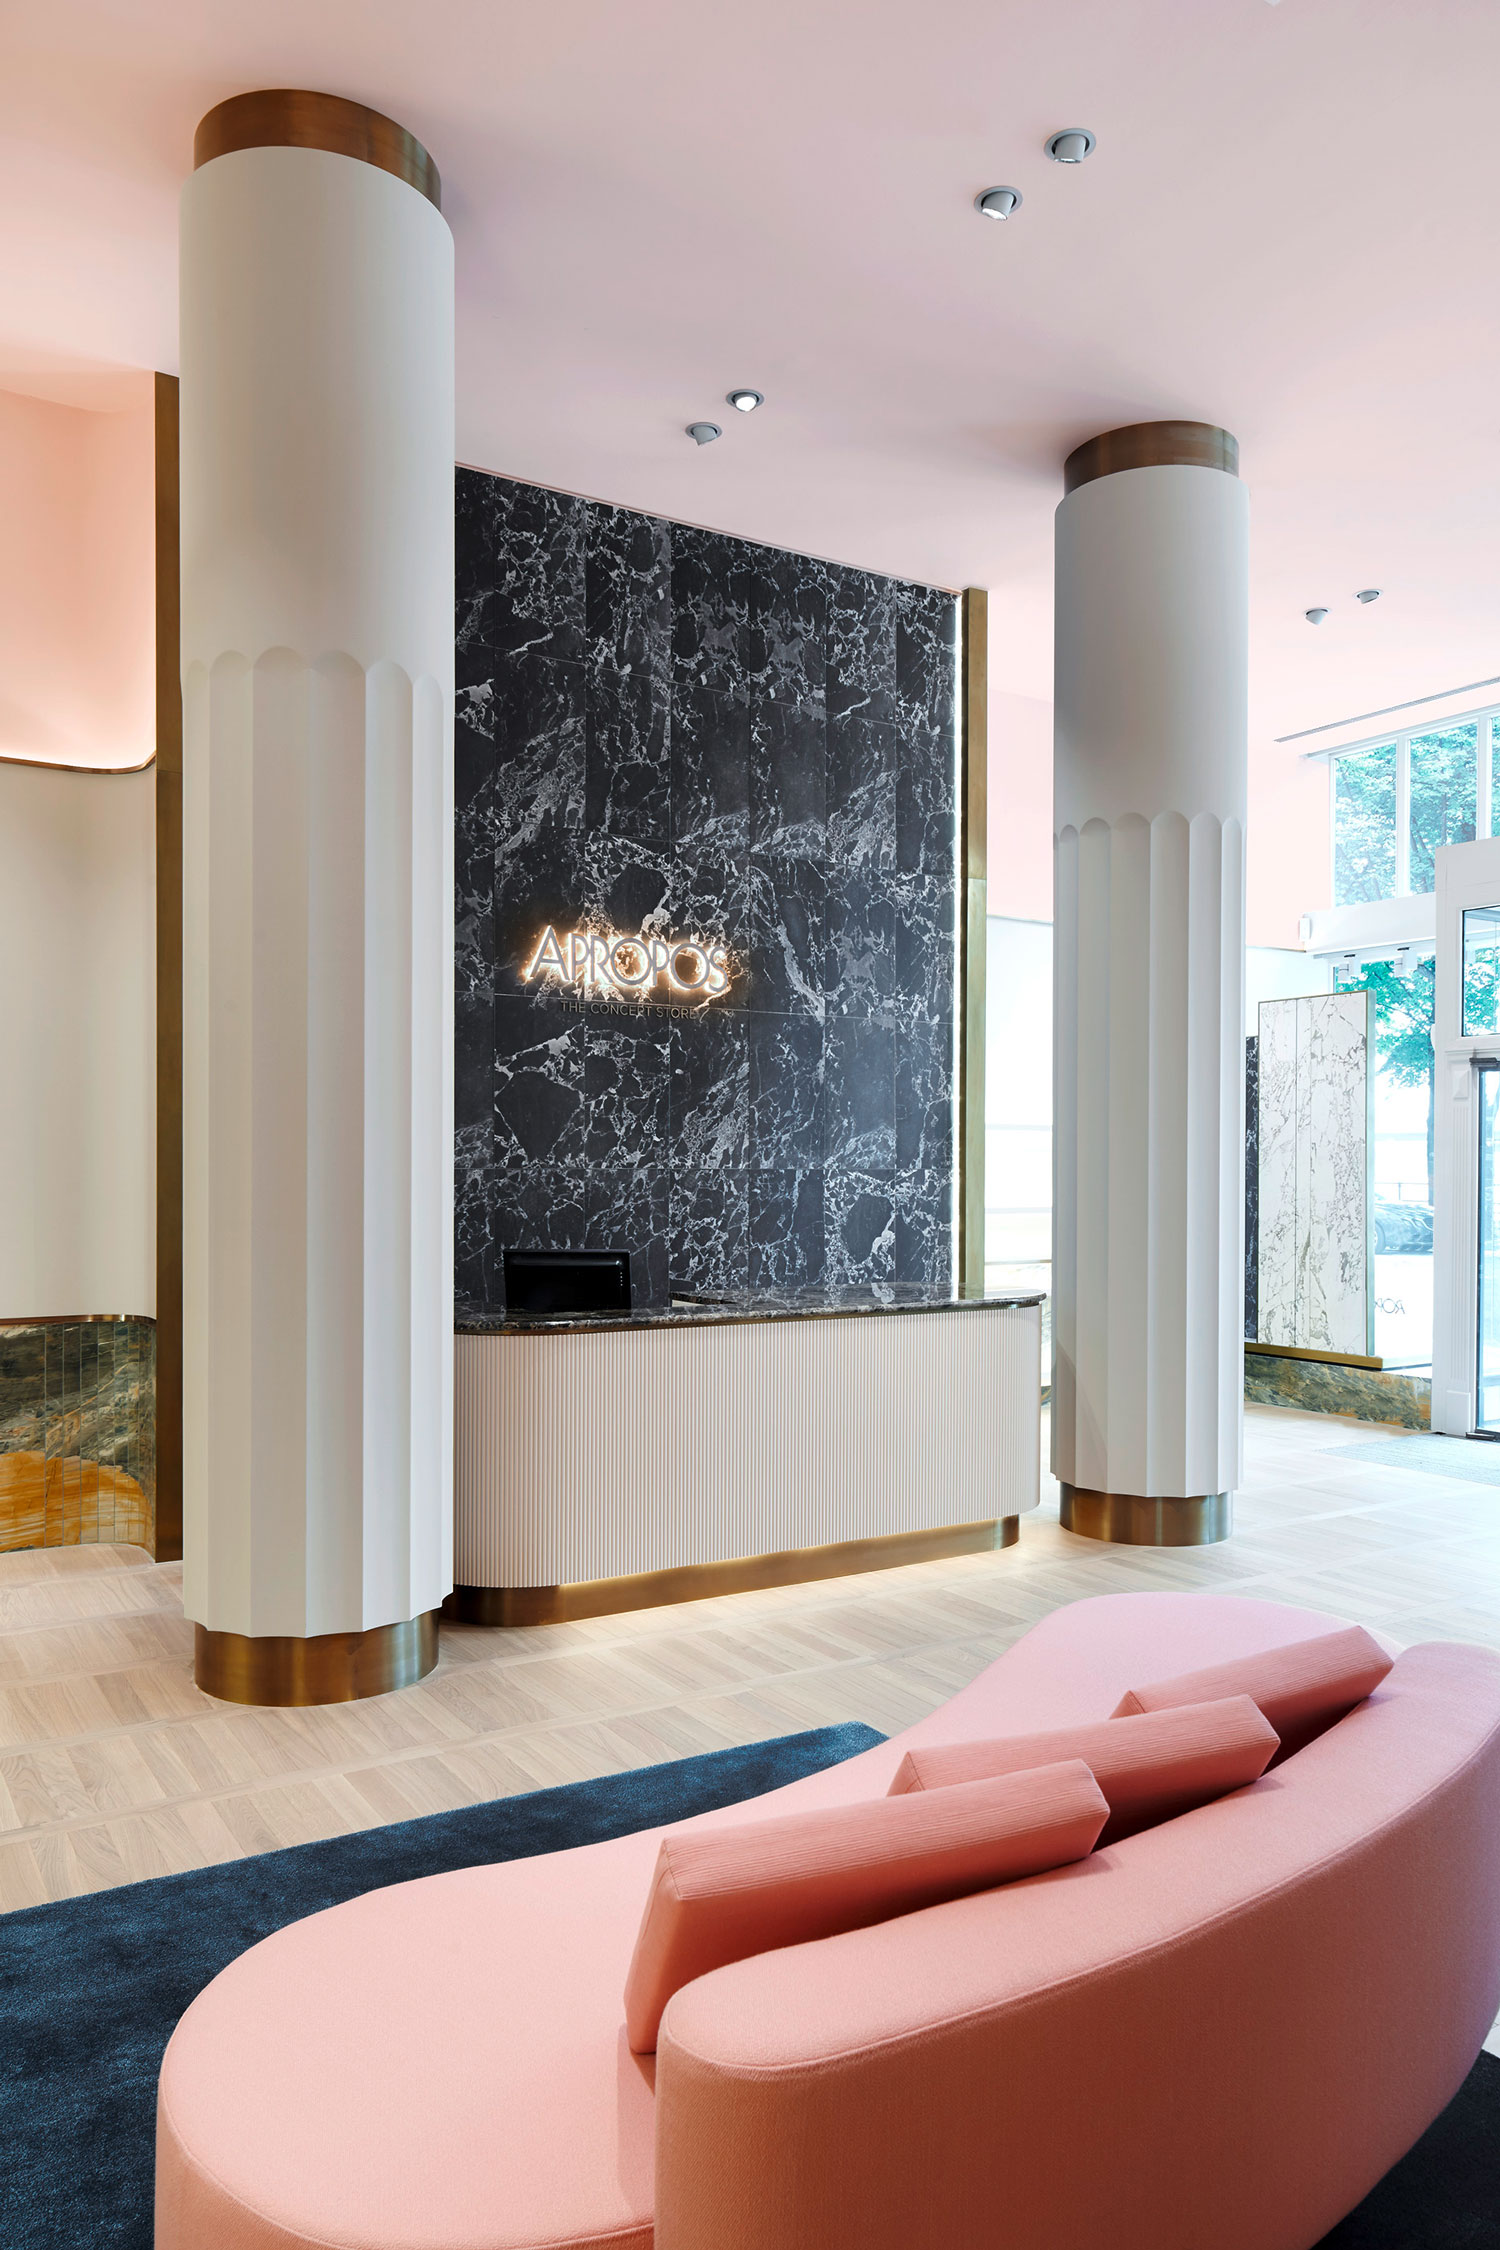 Apropos Concept Store in Hamburg by Rodolphe Parente & Benjamin Liatoud | Yelllowtrace